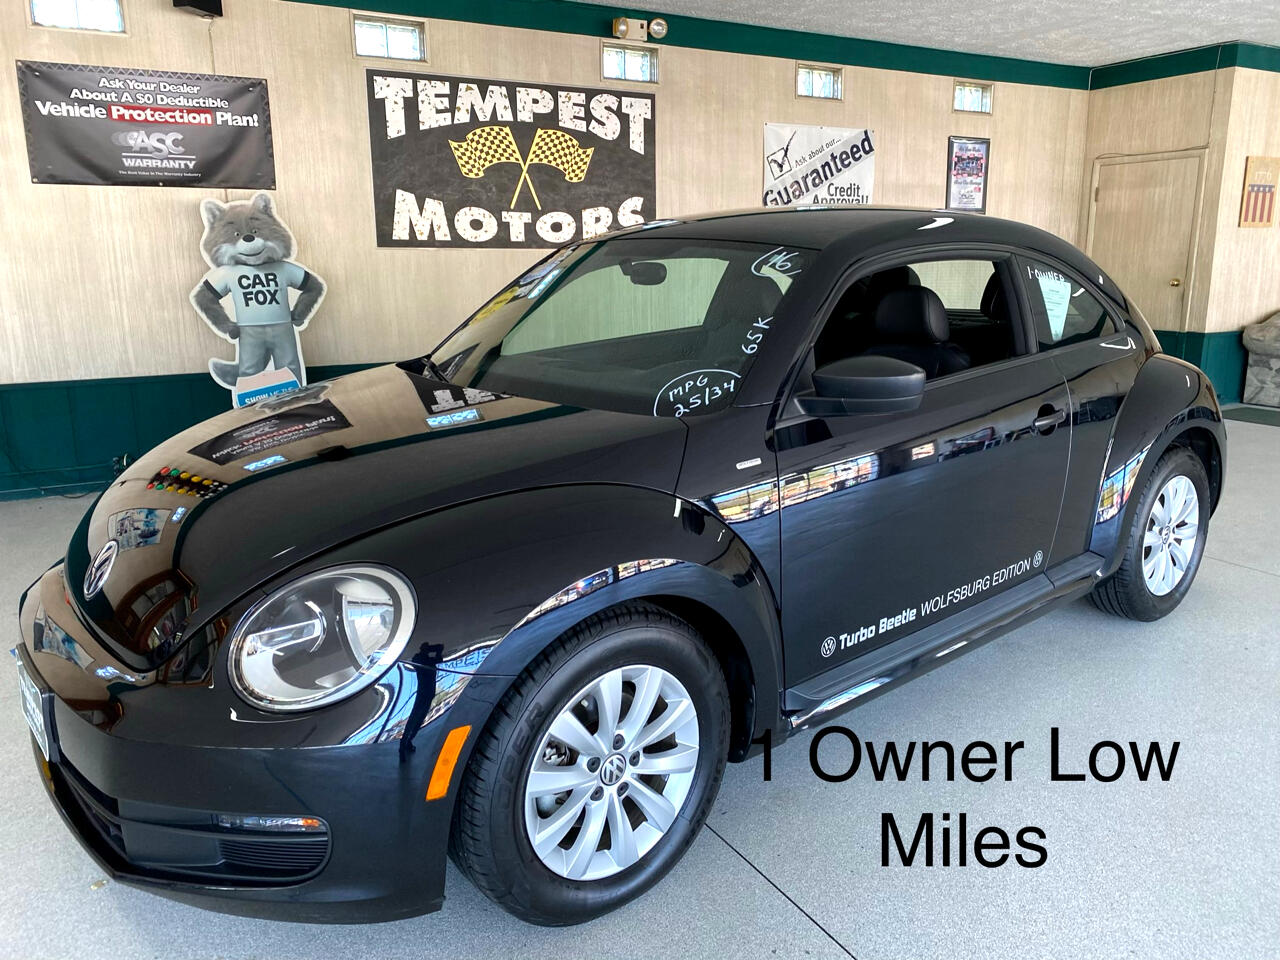 Volkswagen Beetle Coupe 2dr Auto 1.8T Wolfsburg Edition PZEV 2016